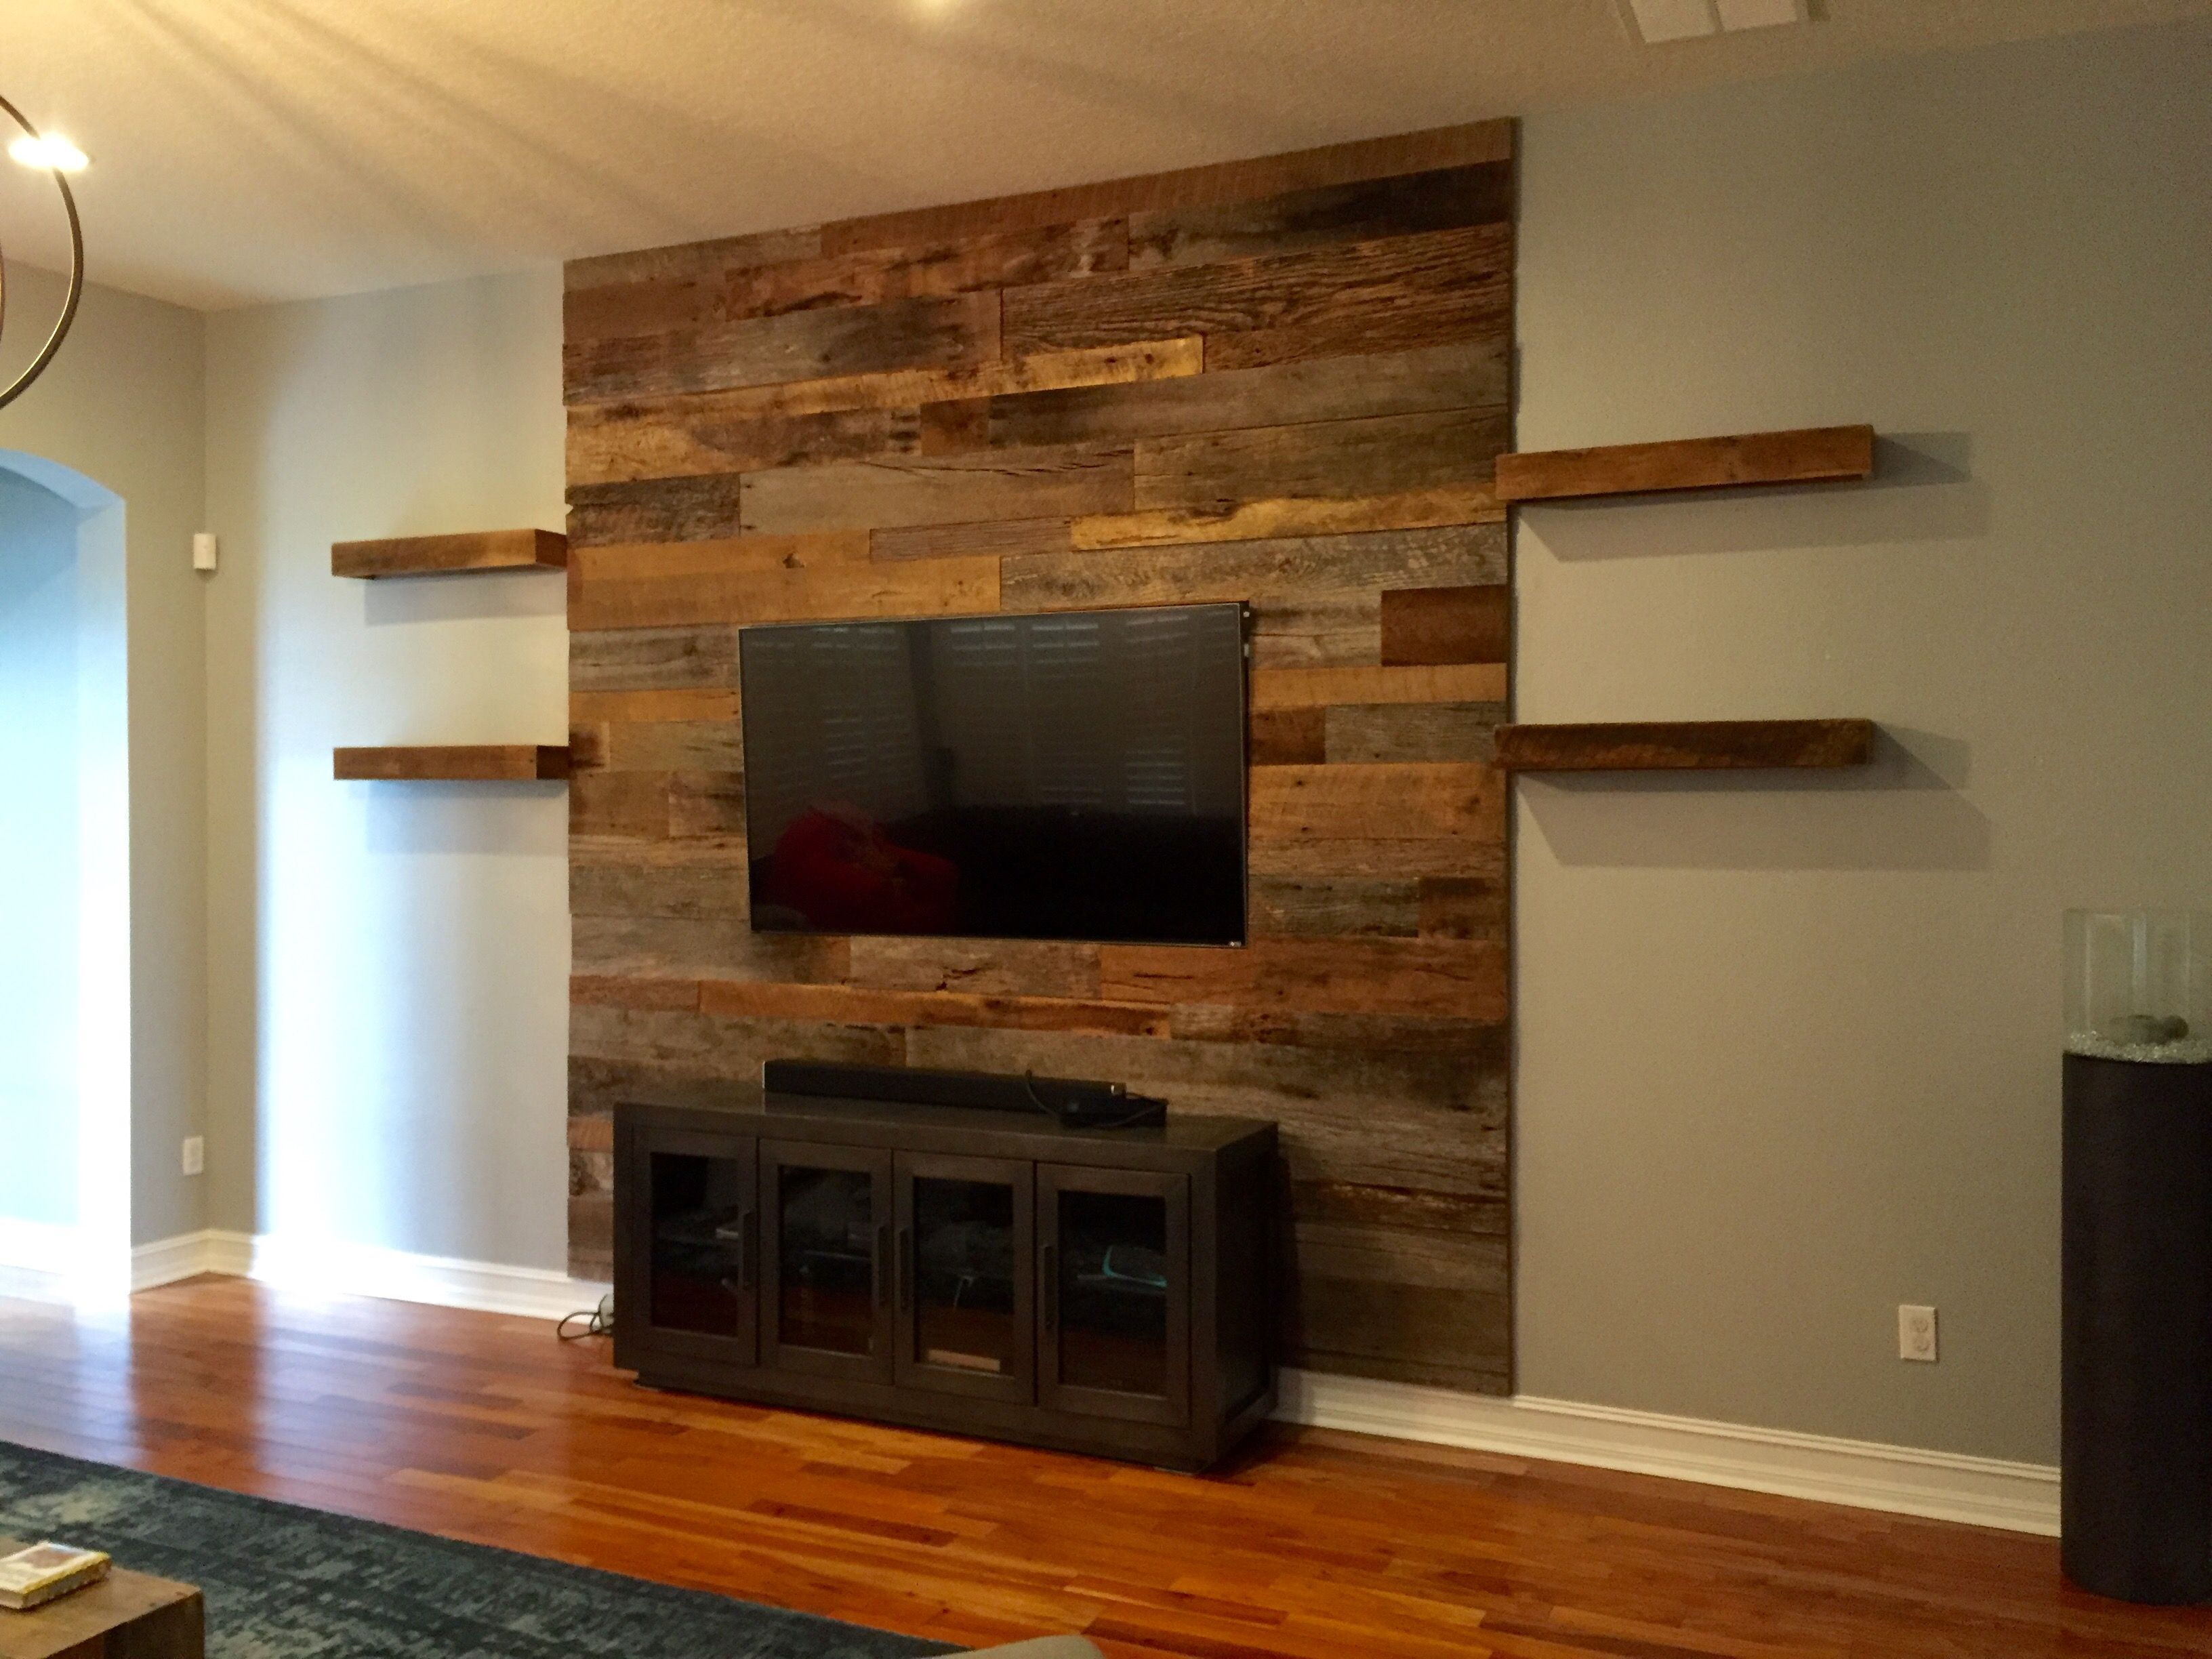 Peel And Stick 3d Wall Panels White Brick Wallpaper Trevor S Reclaimed Barn Wood Accent Wall With Shelving